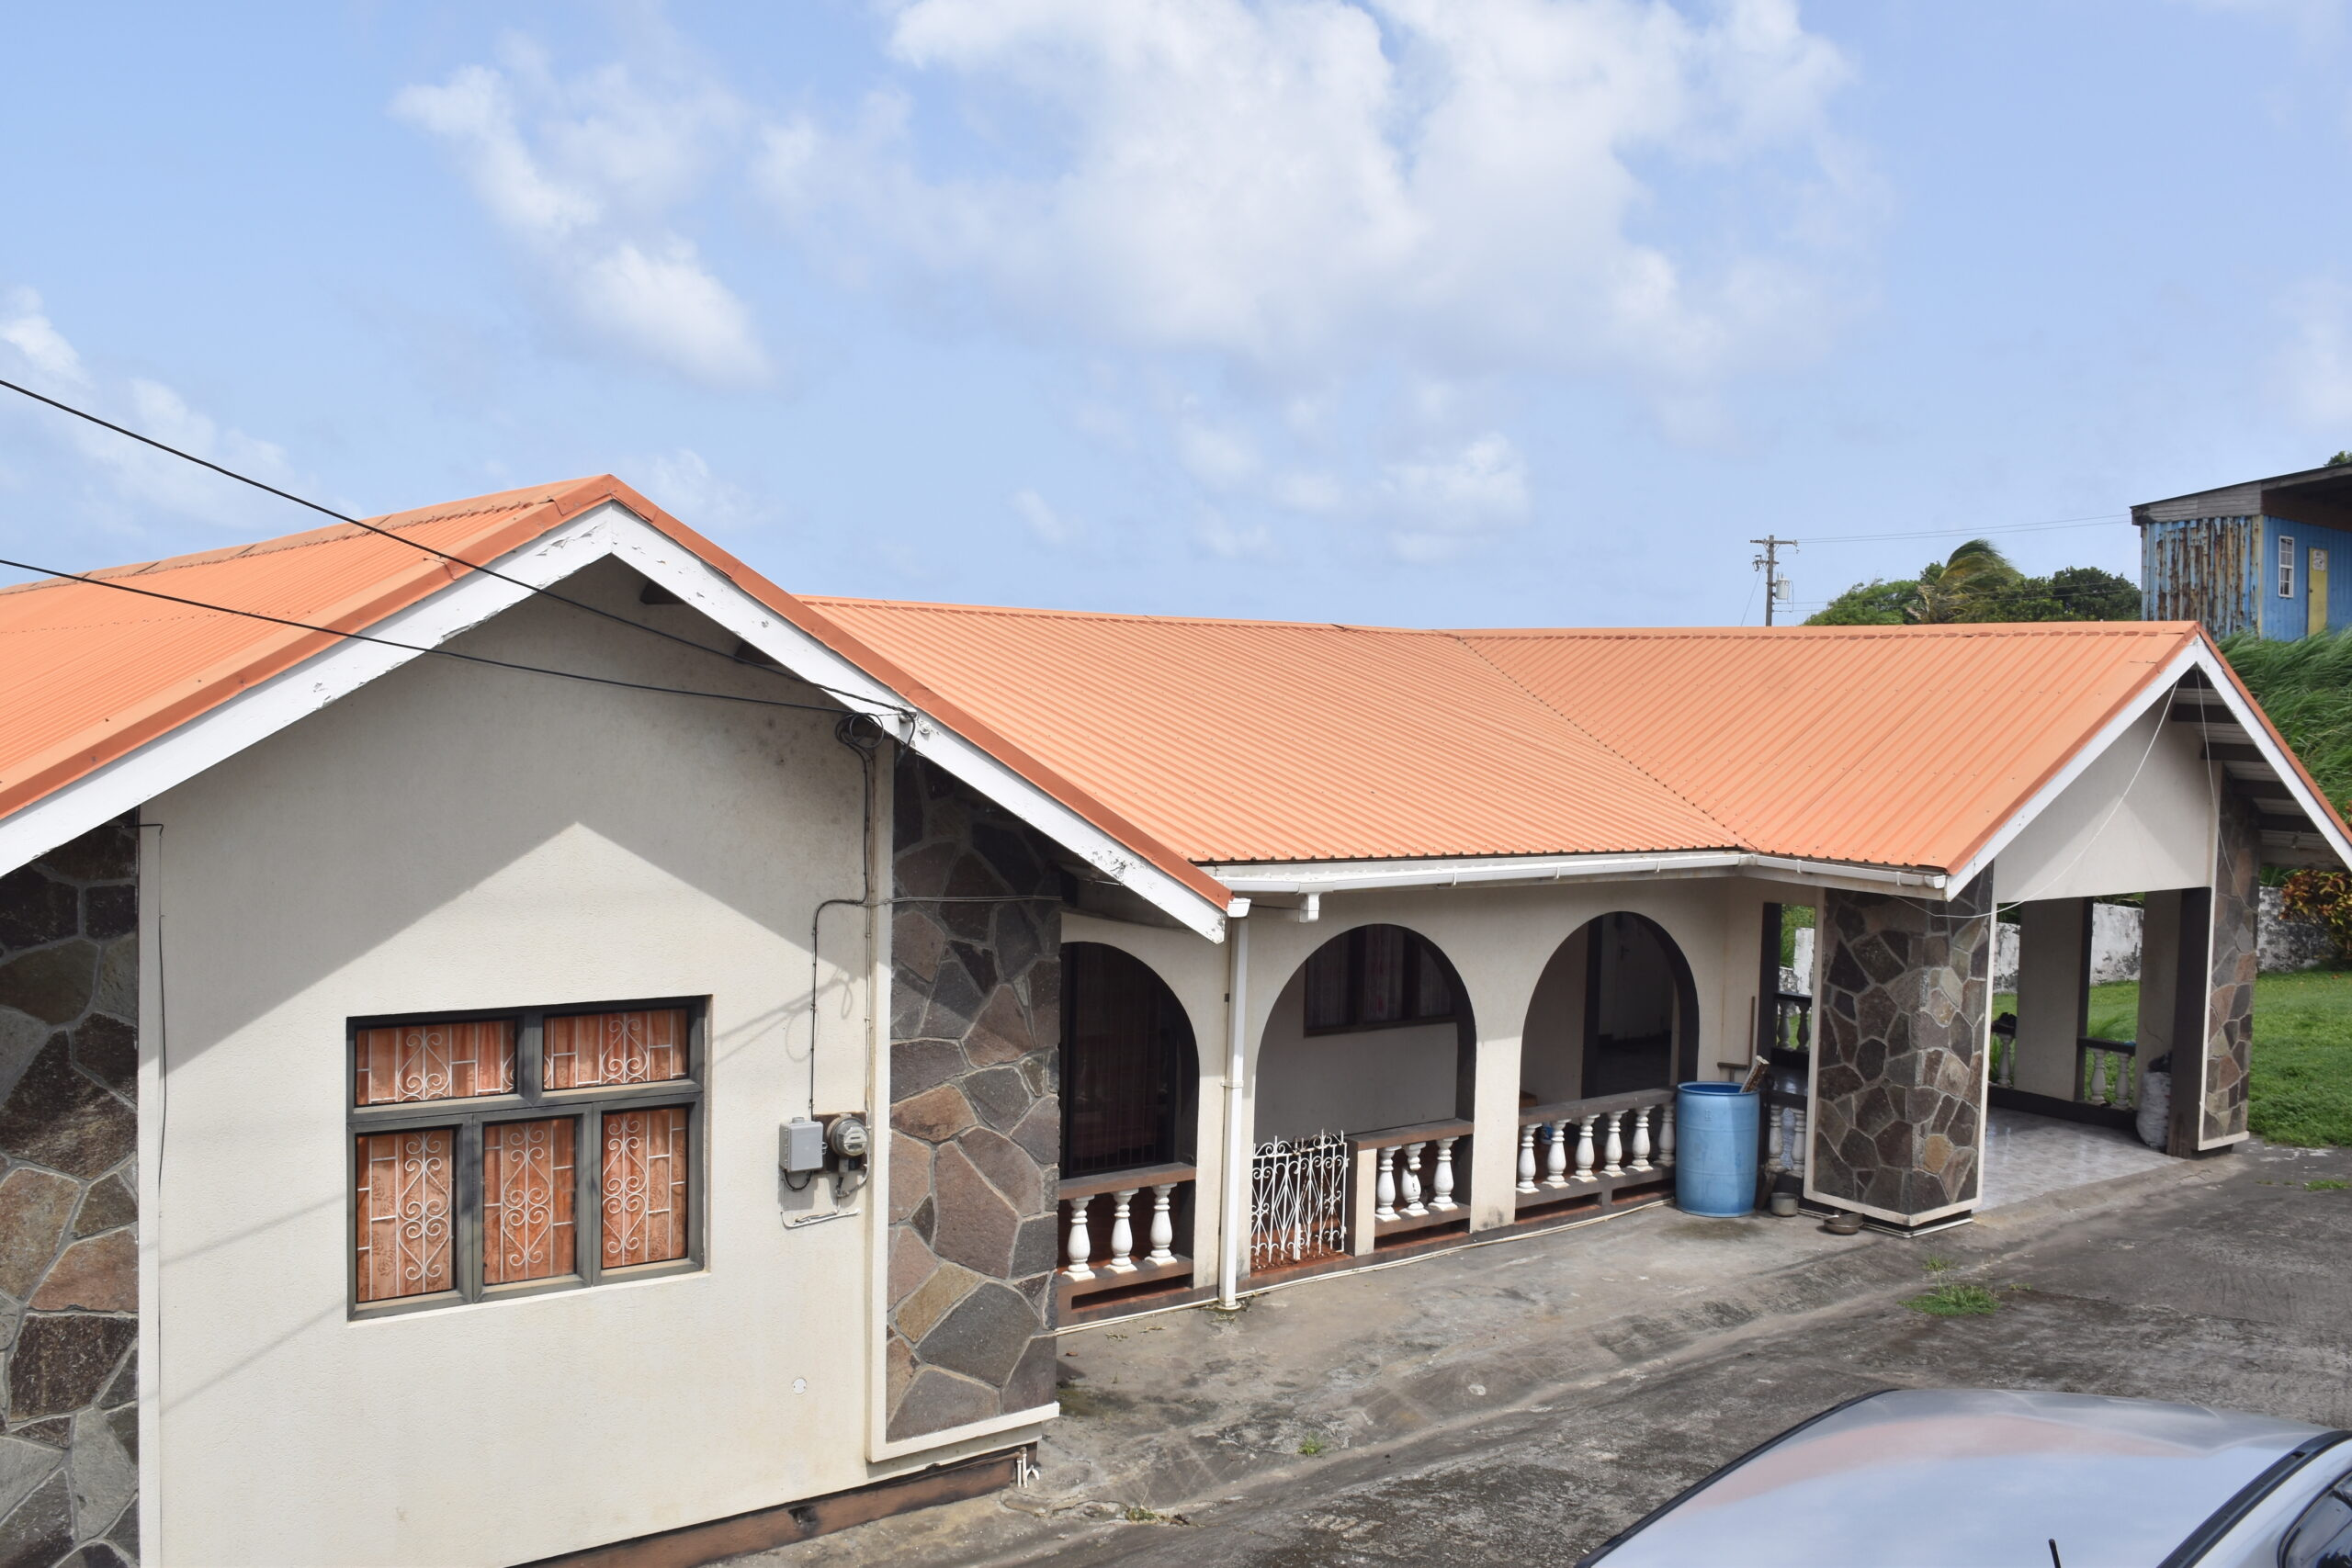 FOR SALE: RESIDENTIAL PROPERTY AT MT. PLEASANT